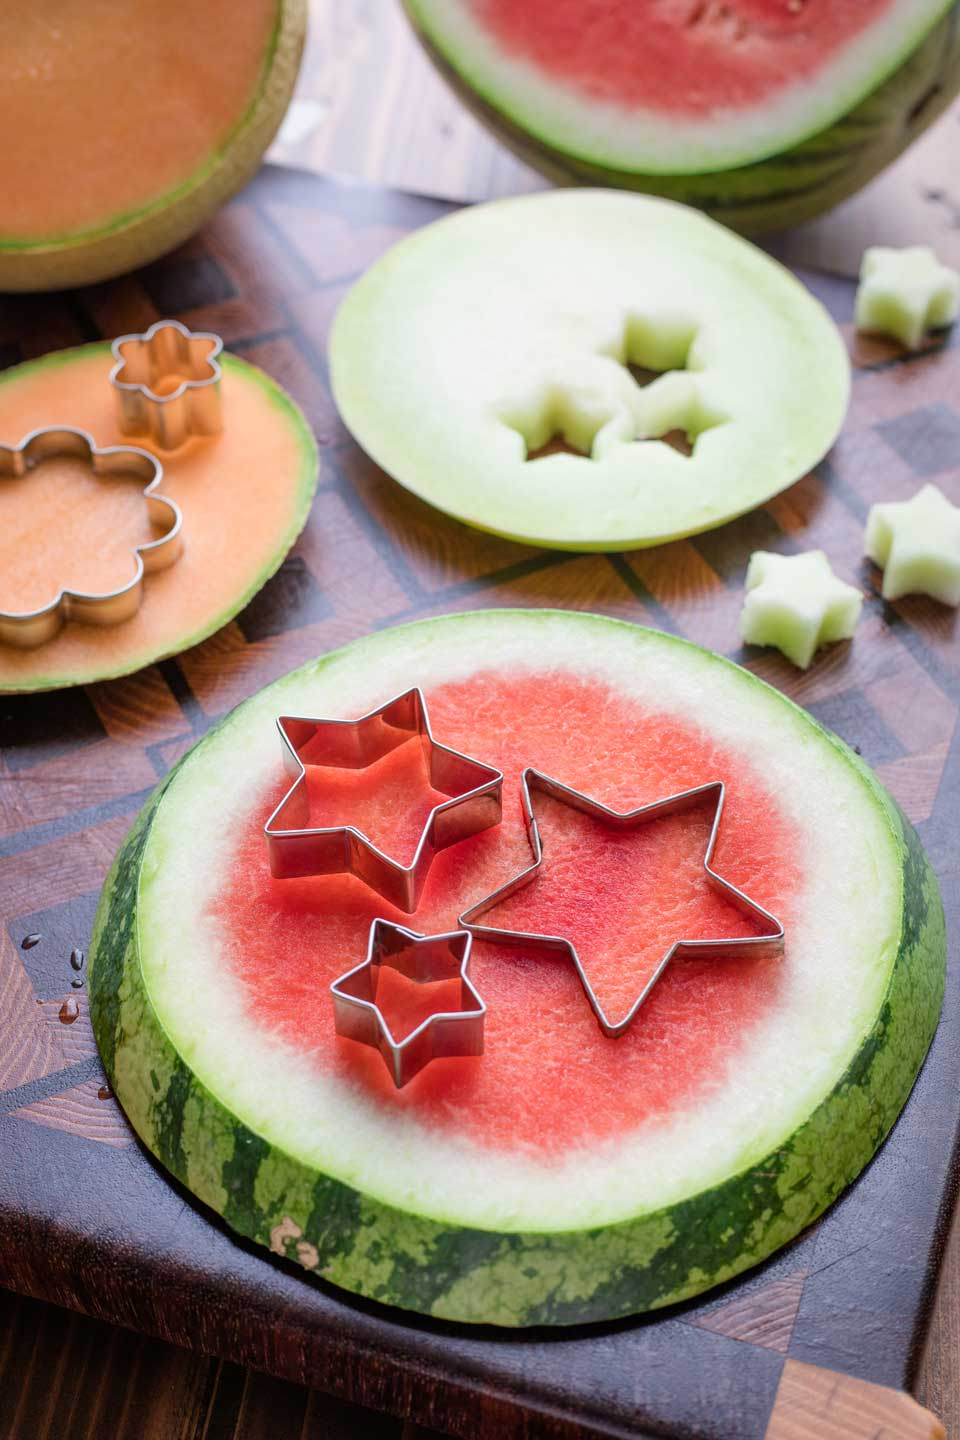 various types of melon laying on a cutting board with different sizes of star-shaped and flower-shaped cookie cutters cutting out shapes from them